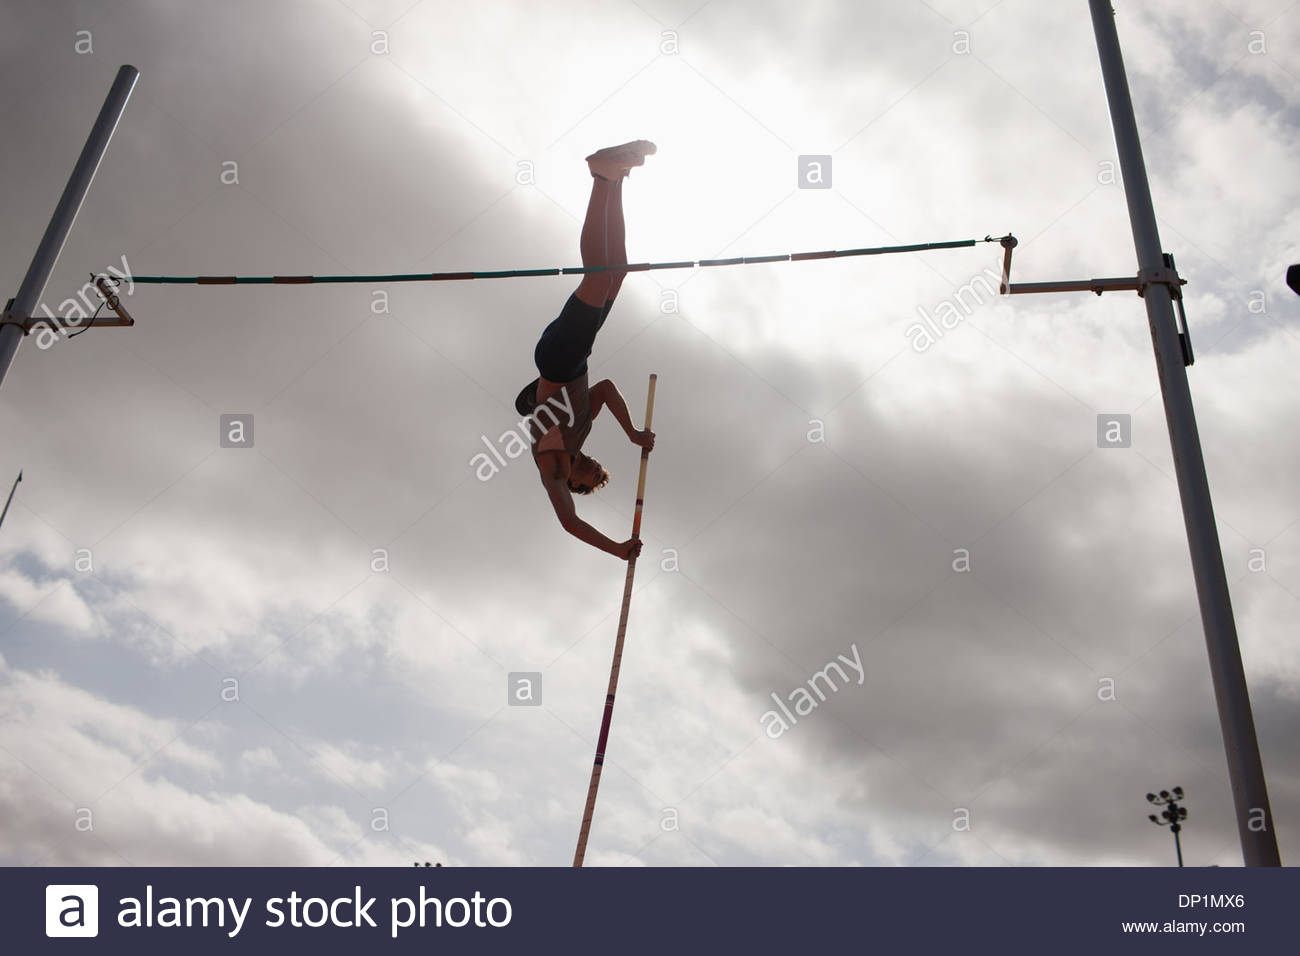 Pole vaulter - Stock Image